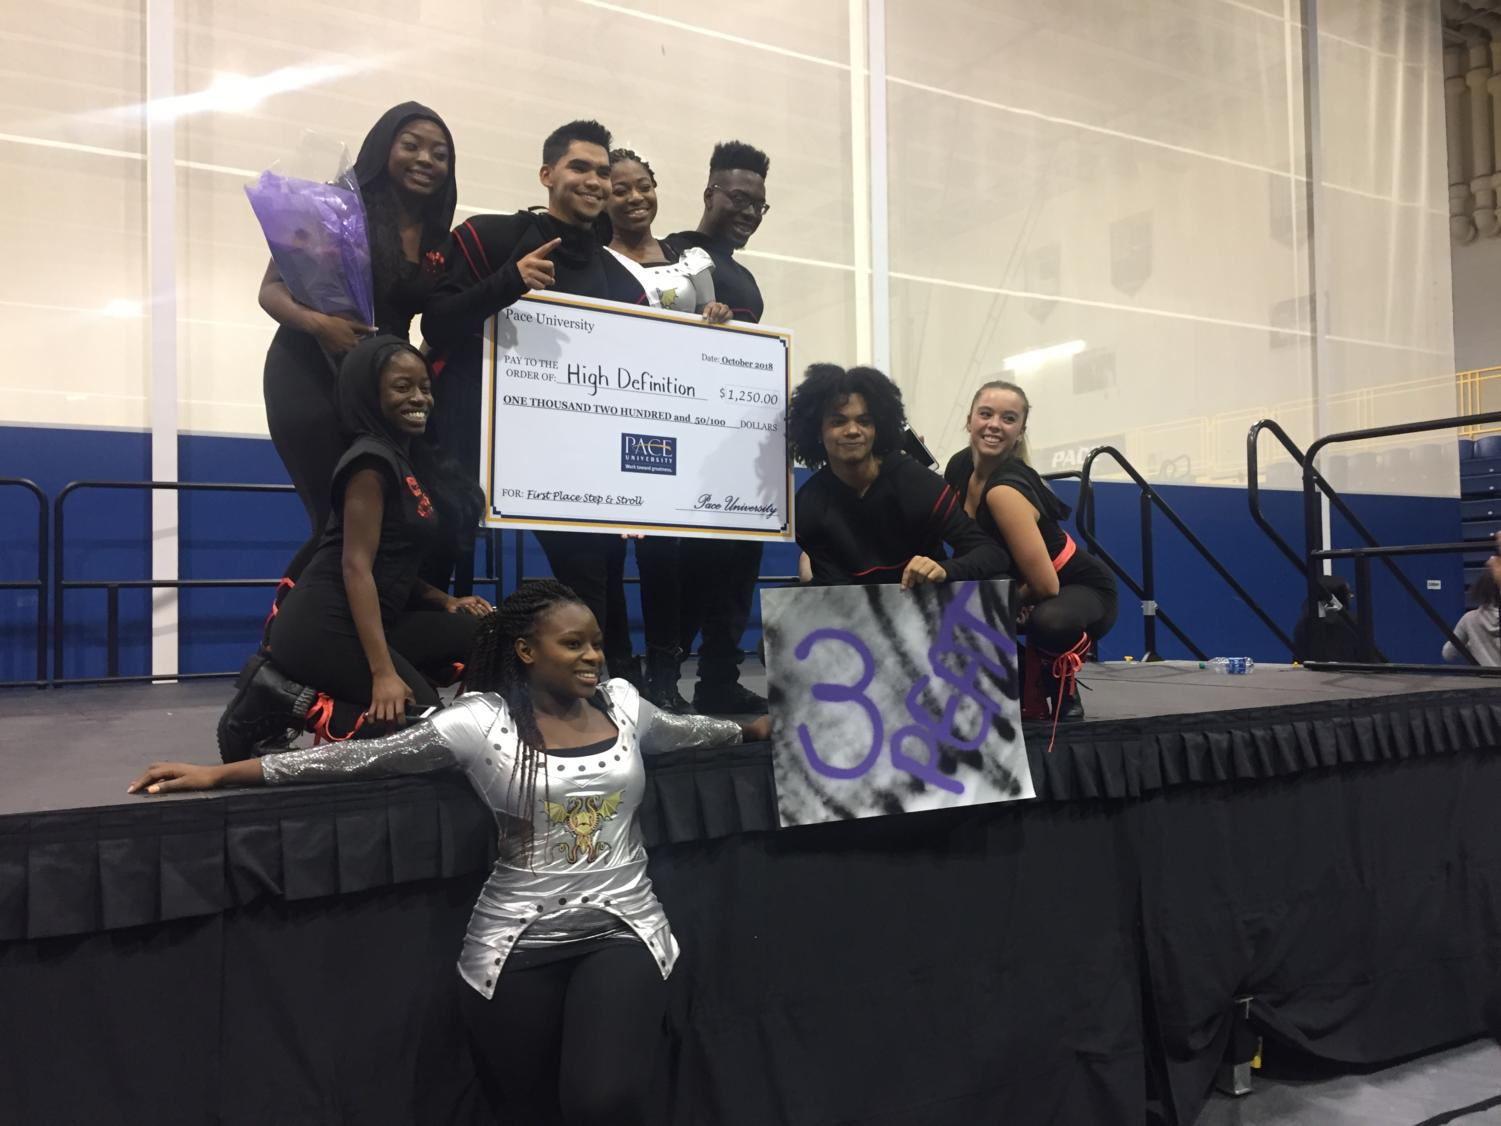 High Definition poses on the stage with their $1,250 prize after winning the Step and Stroll Competition